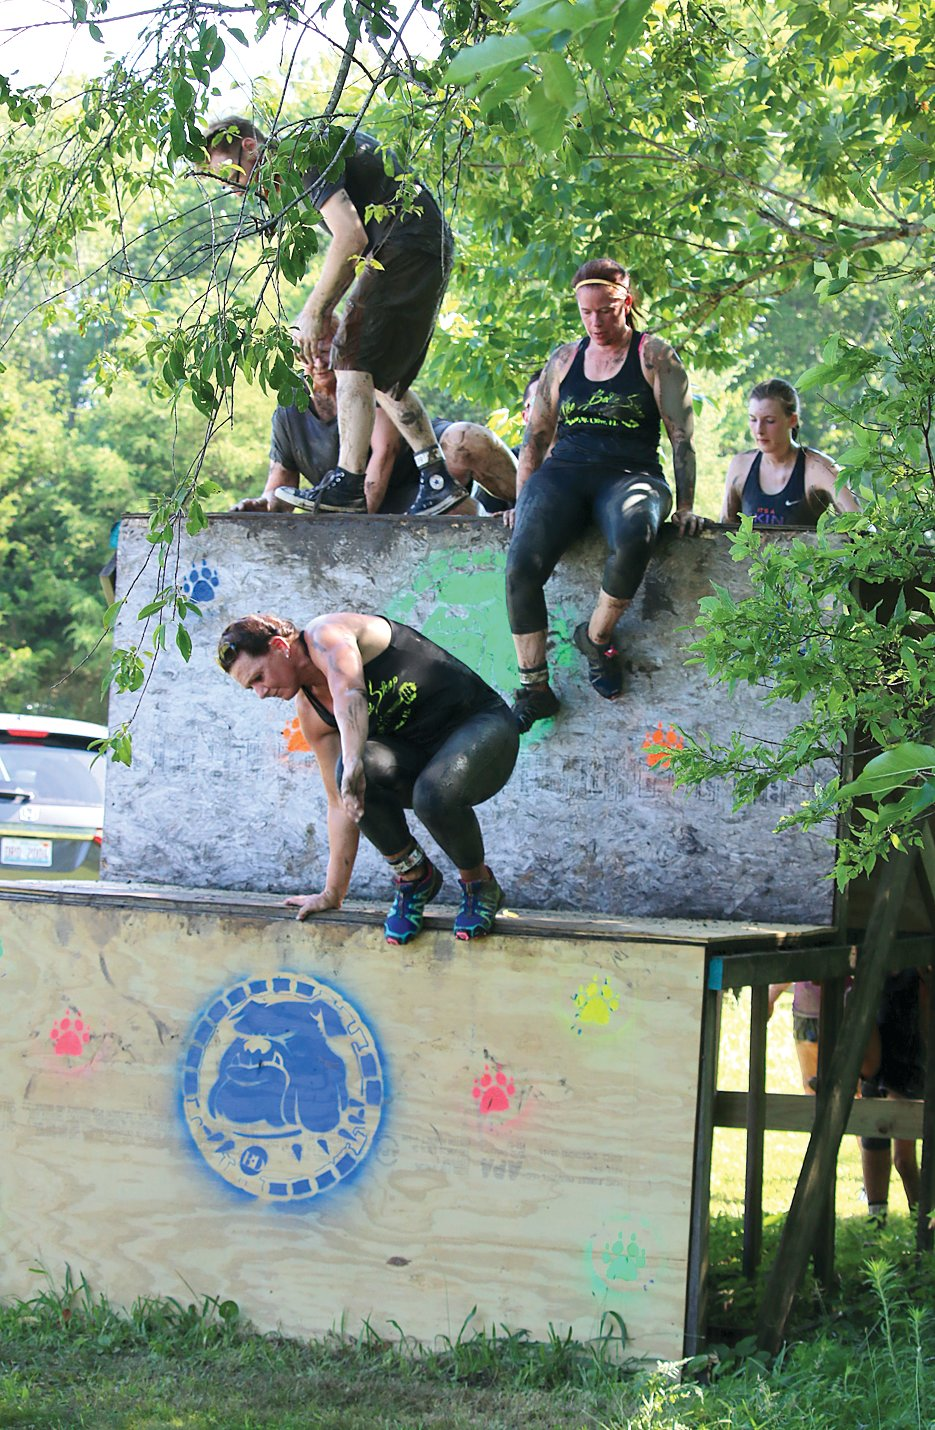 With the finish line in site and exhausted from the previous three miles of the water, hill and mud filled Big Dawg Dare course, runners climb over handmade obstacles near the end of the 5K route.